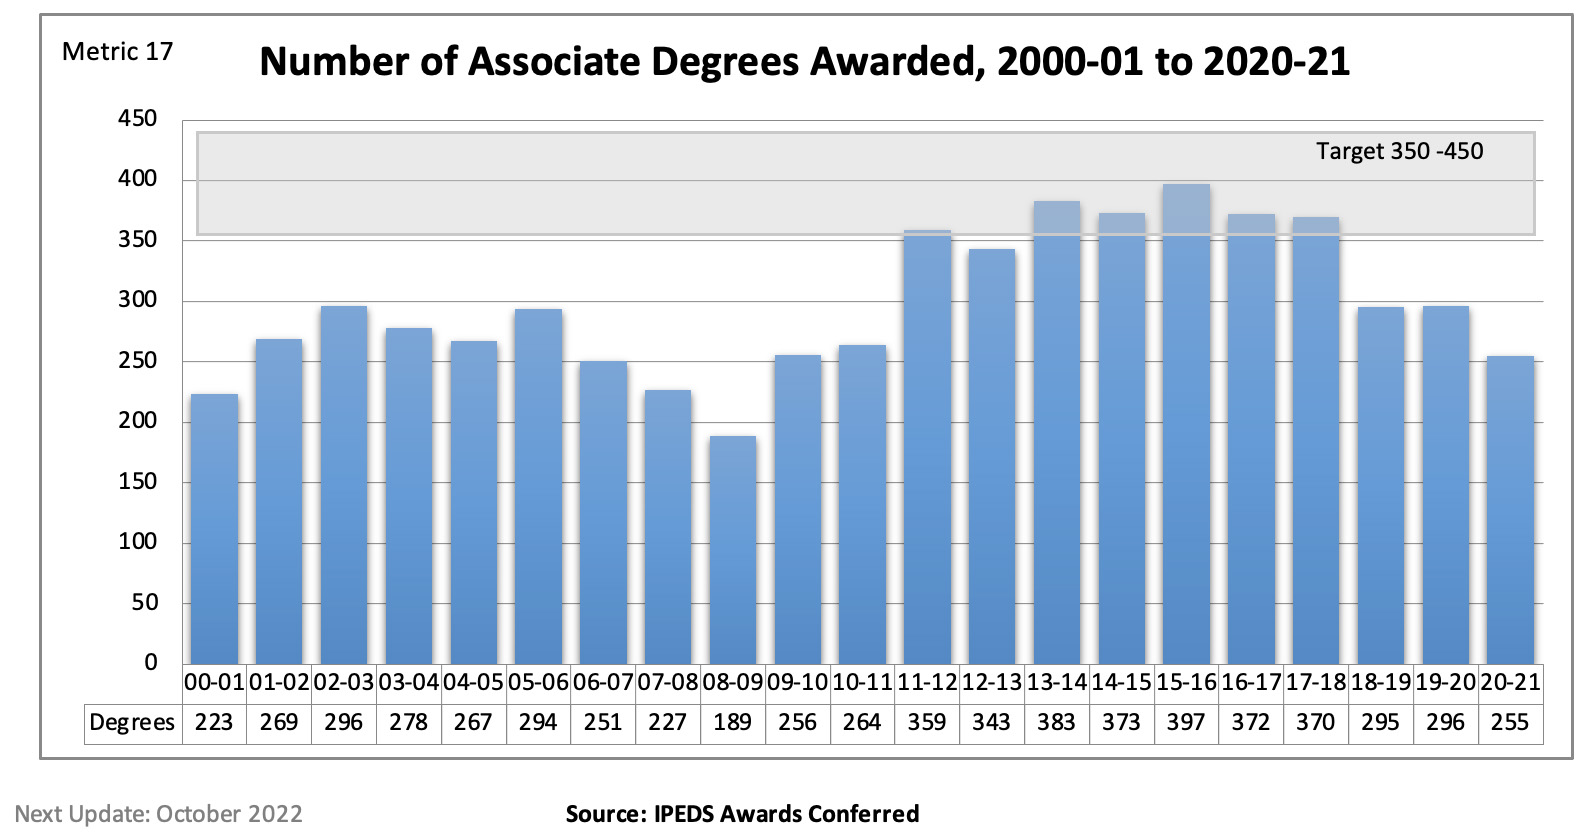 Graph depicting the number of degrees awarded at SMC since 2001. The target is 350-400. It peaked at 397 in 2015-16. Preliminary estimates for 2019-20 is 297.